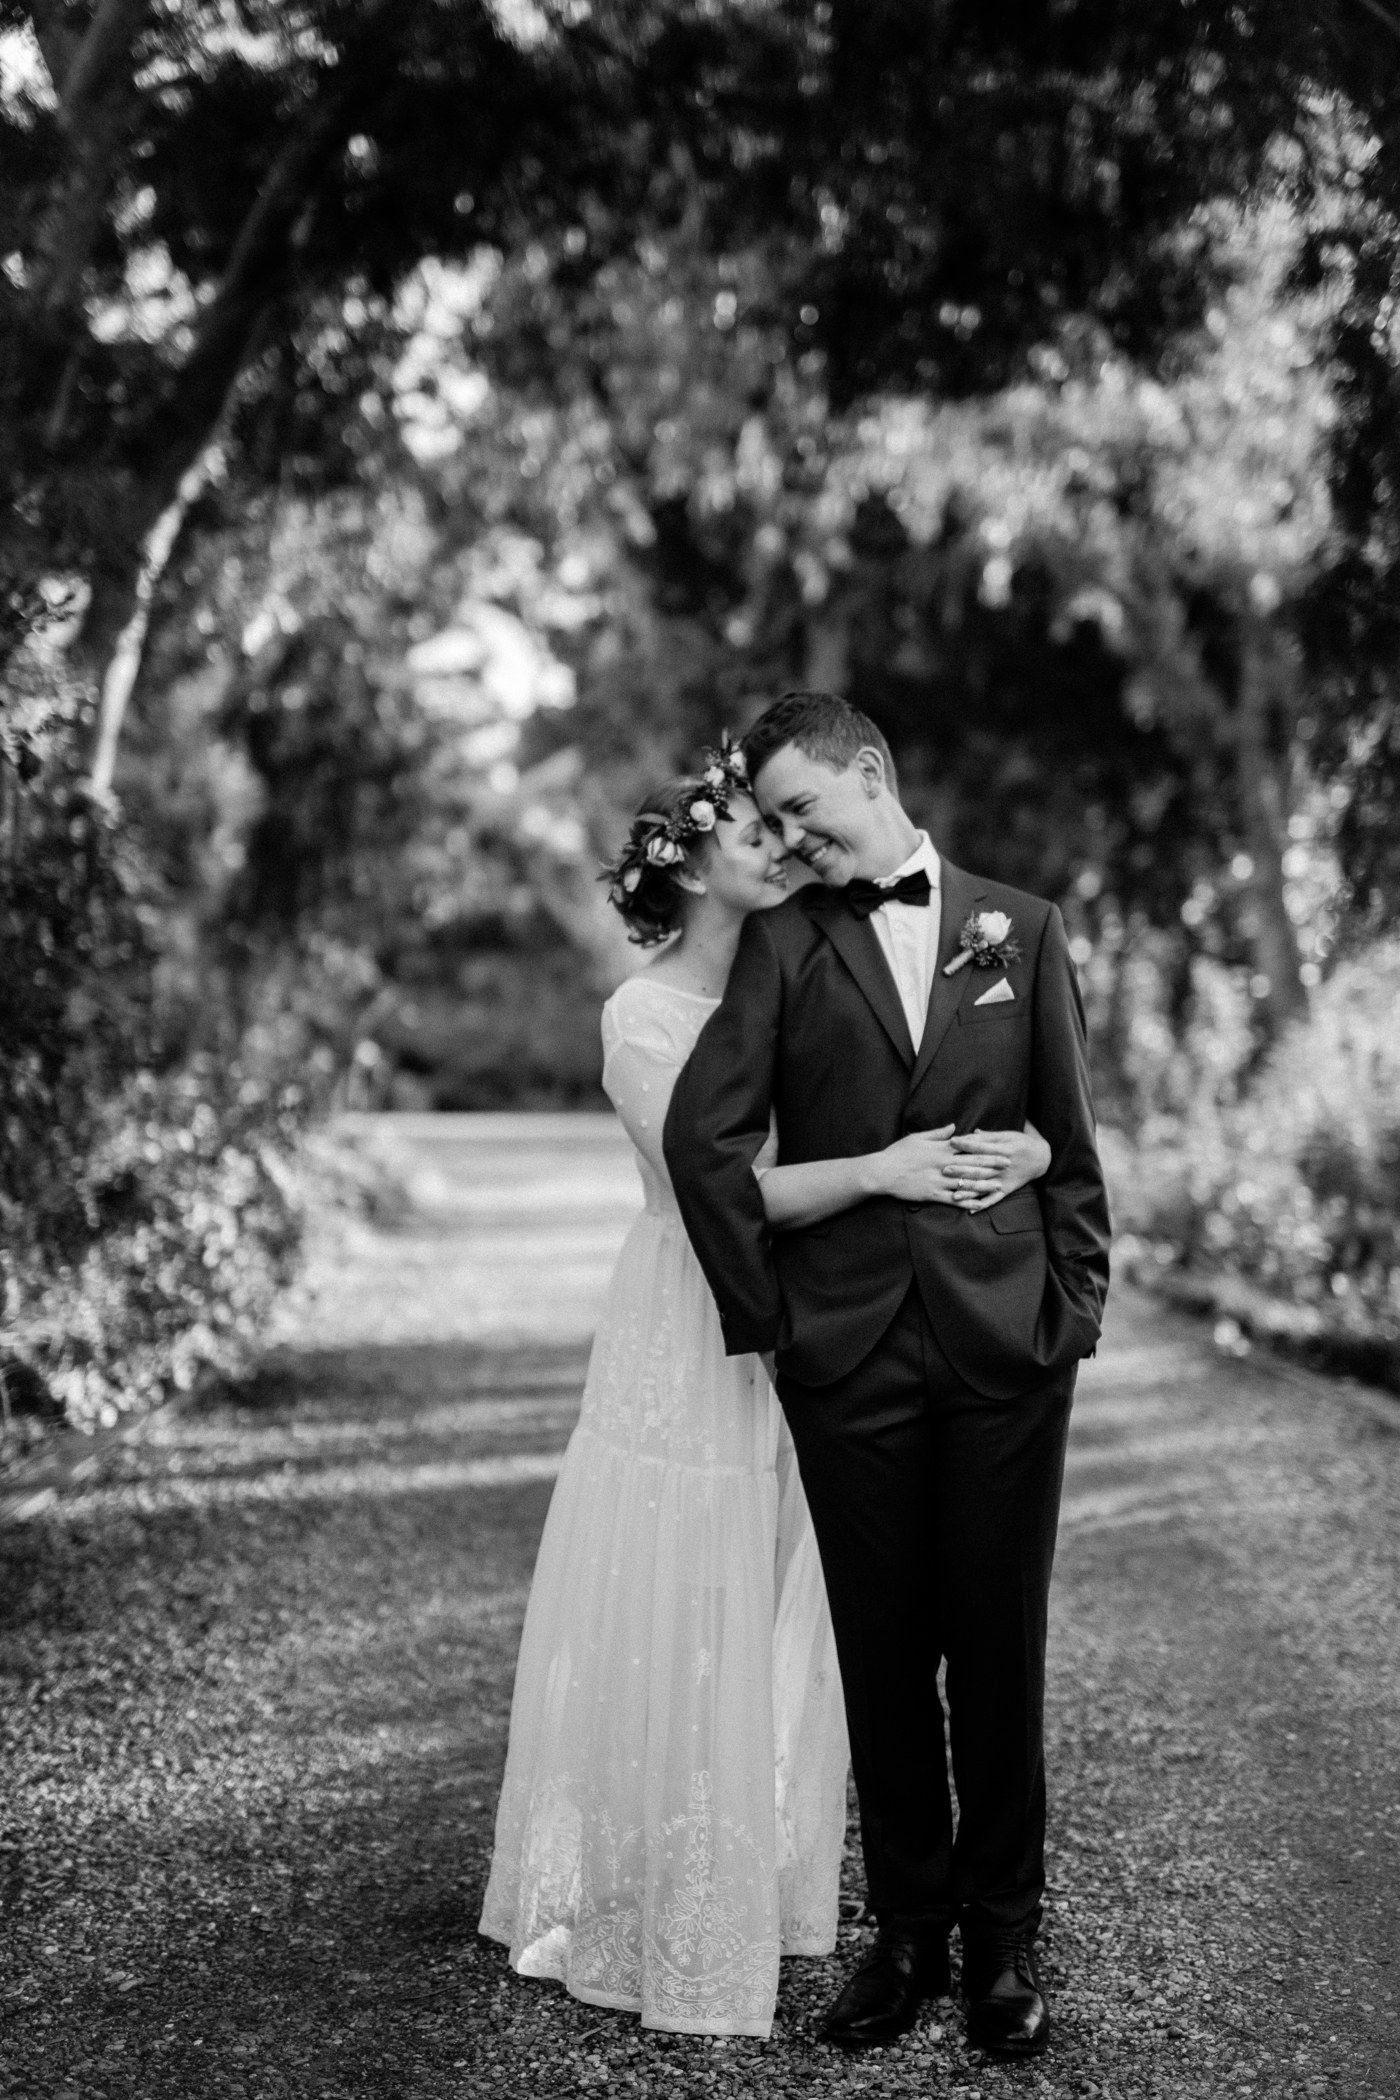 Jo & Aaron - Natural Wedding Photography in Adelaide - Beautiful, modern wedding photographer - Al Ru Farm Wedding Photography - Katherine Schultz_0025.jpg